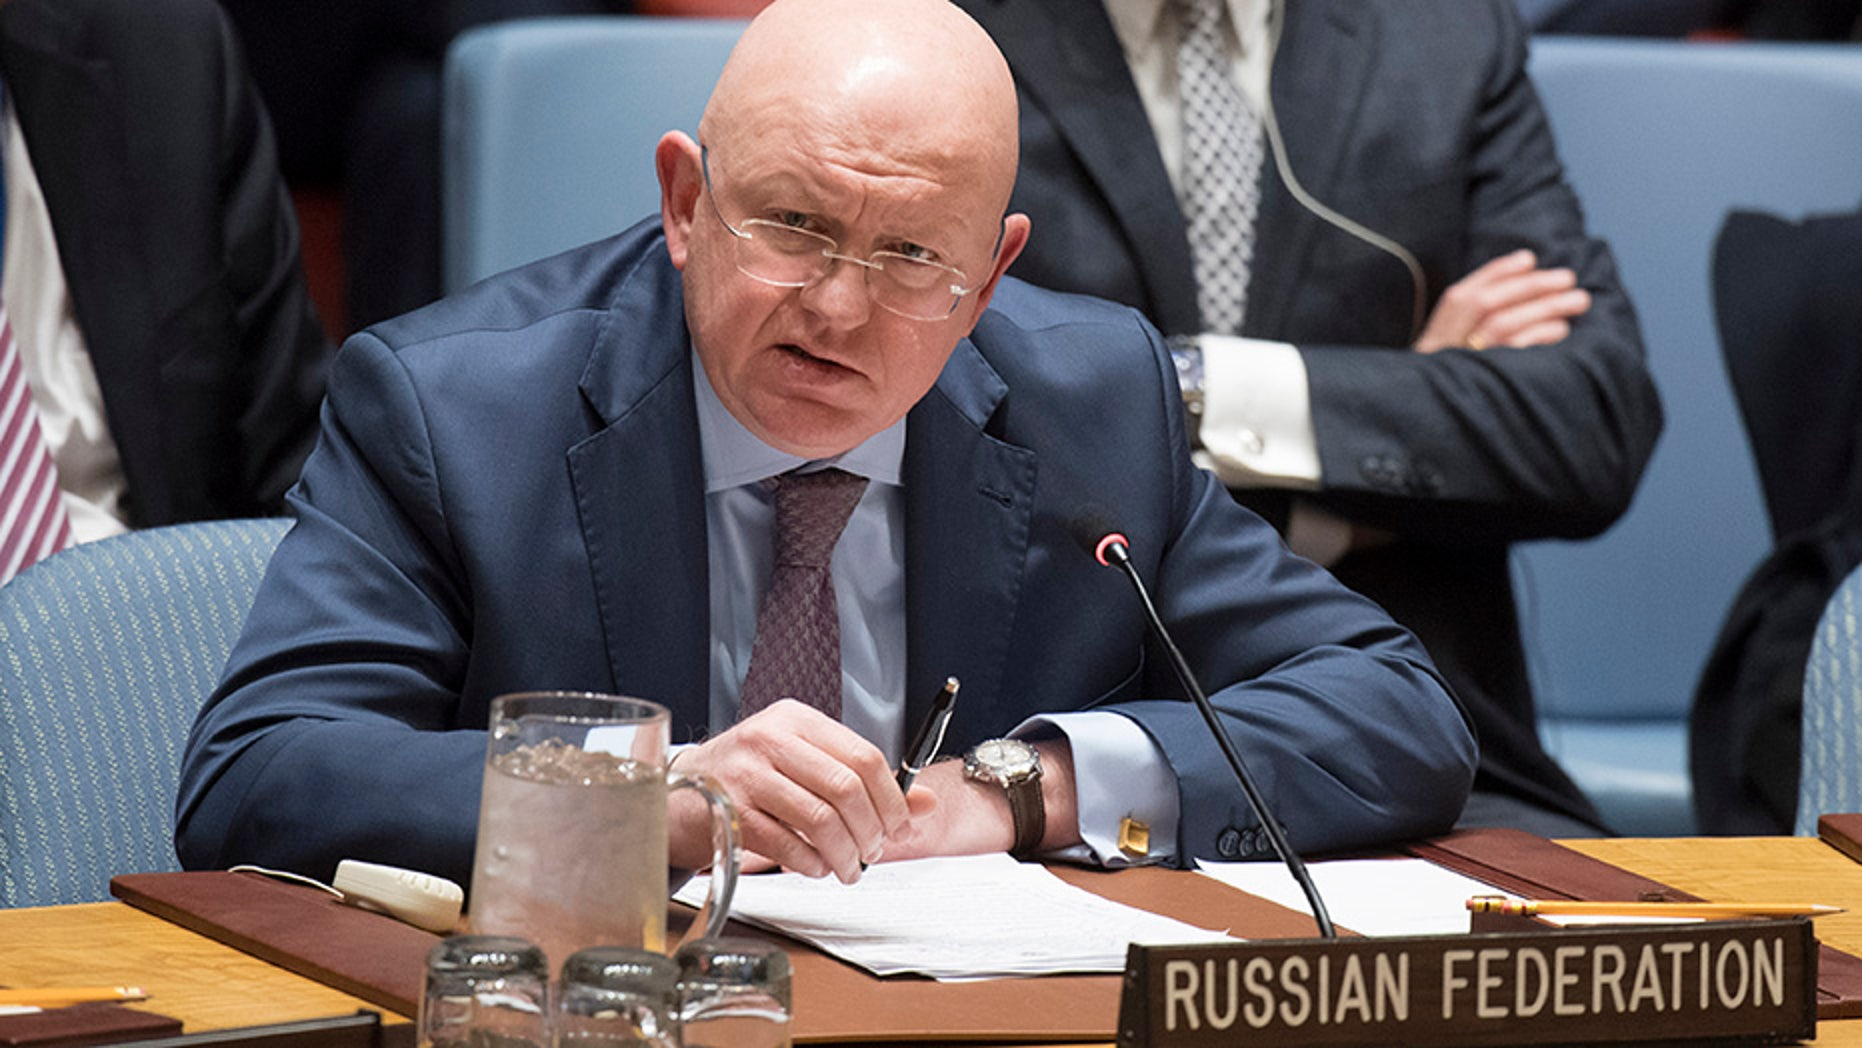 Russian ambassador to the UN, Vassily Nebenzia, brought up Syria during a Security Council meeting regarding Libya.